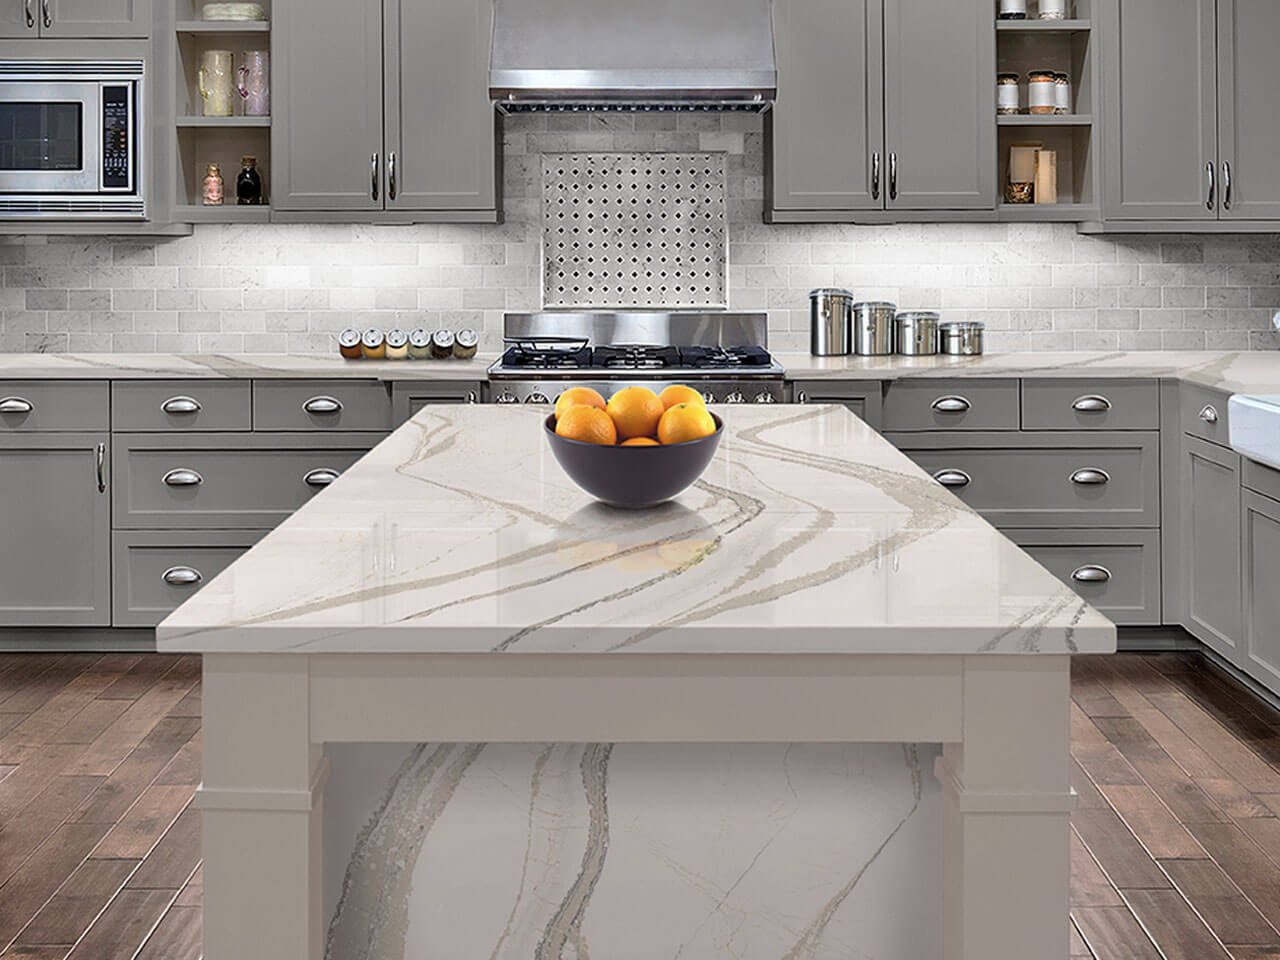 cambria-custom-countertops-at-complete-kitchen-design-michigan